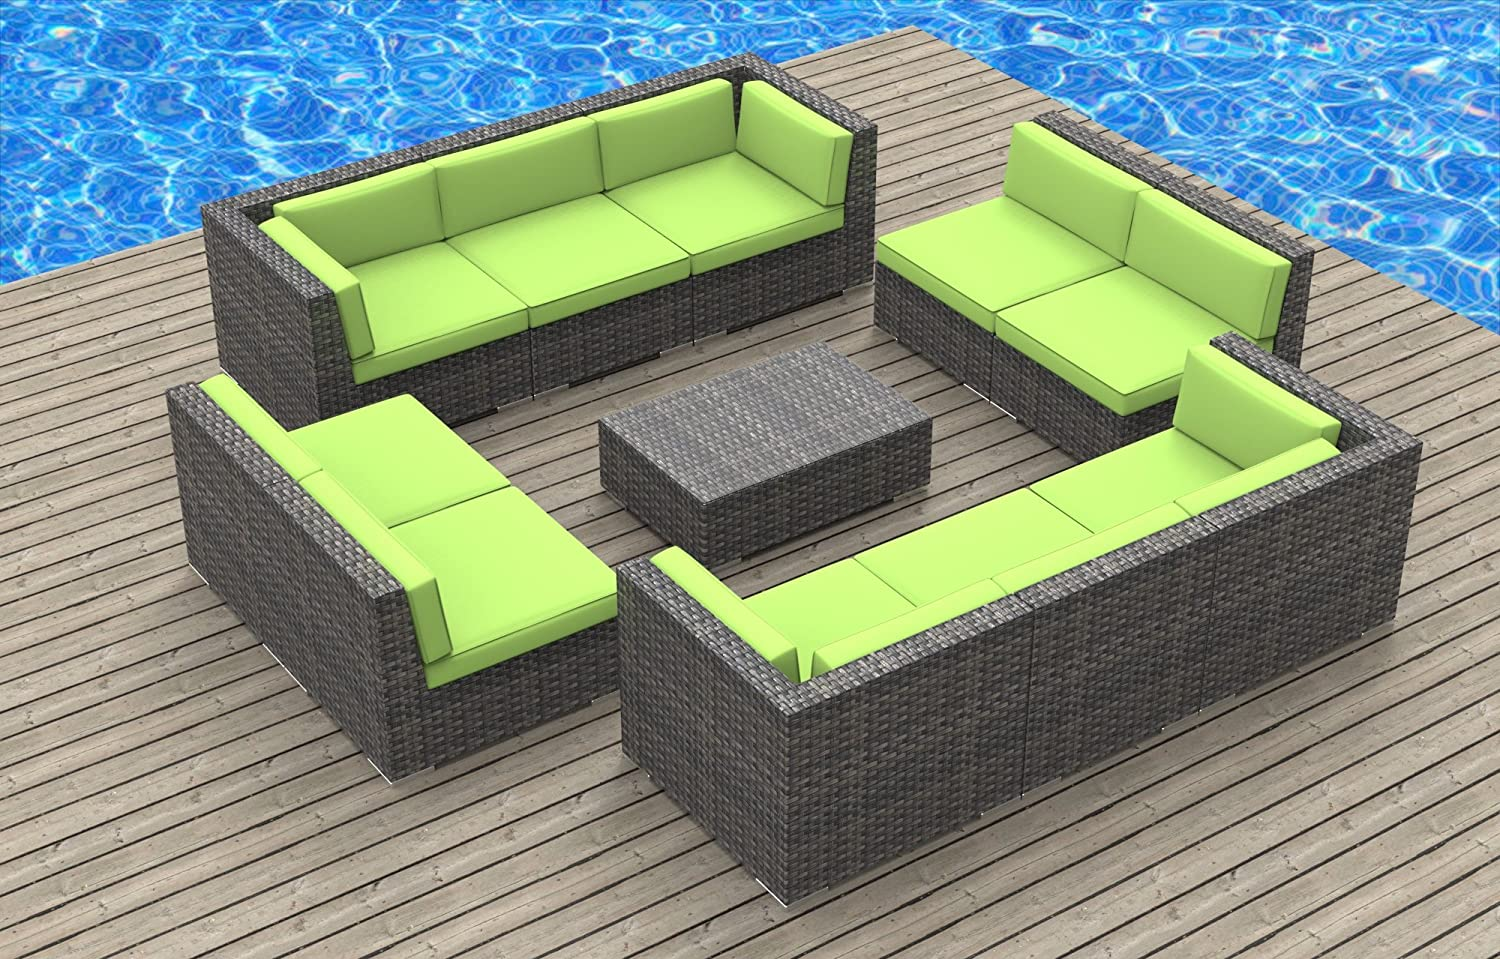 www.urbanfurnishing.net Urban Furnishing - BERMUDA 11pc Modern Outdoor Backyard Wicker Rattan Patio Furniture Sofa Sectional Couch Set - Lime Green at Sears.com